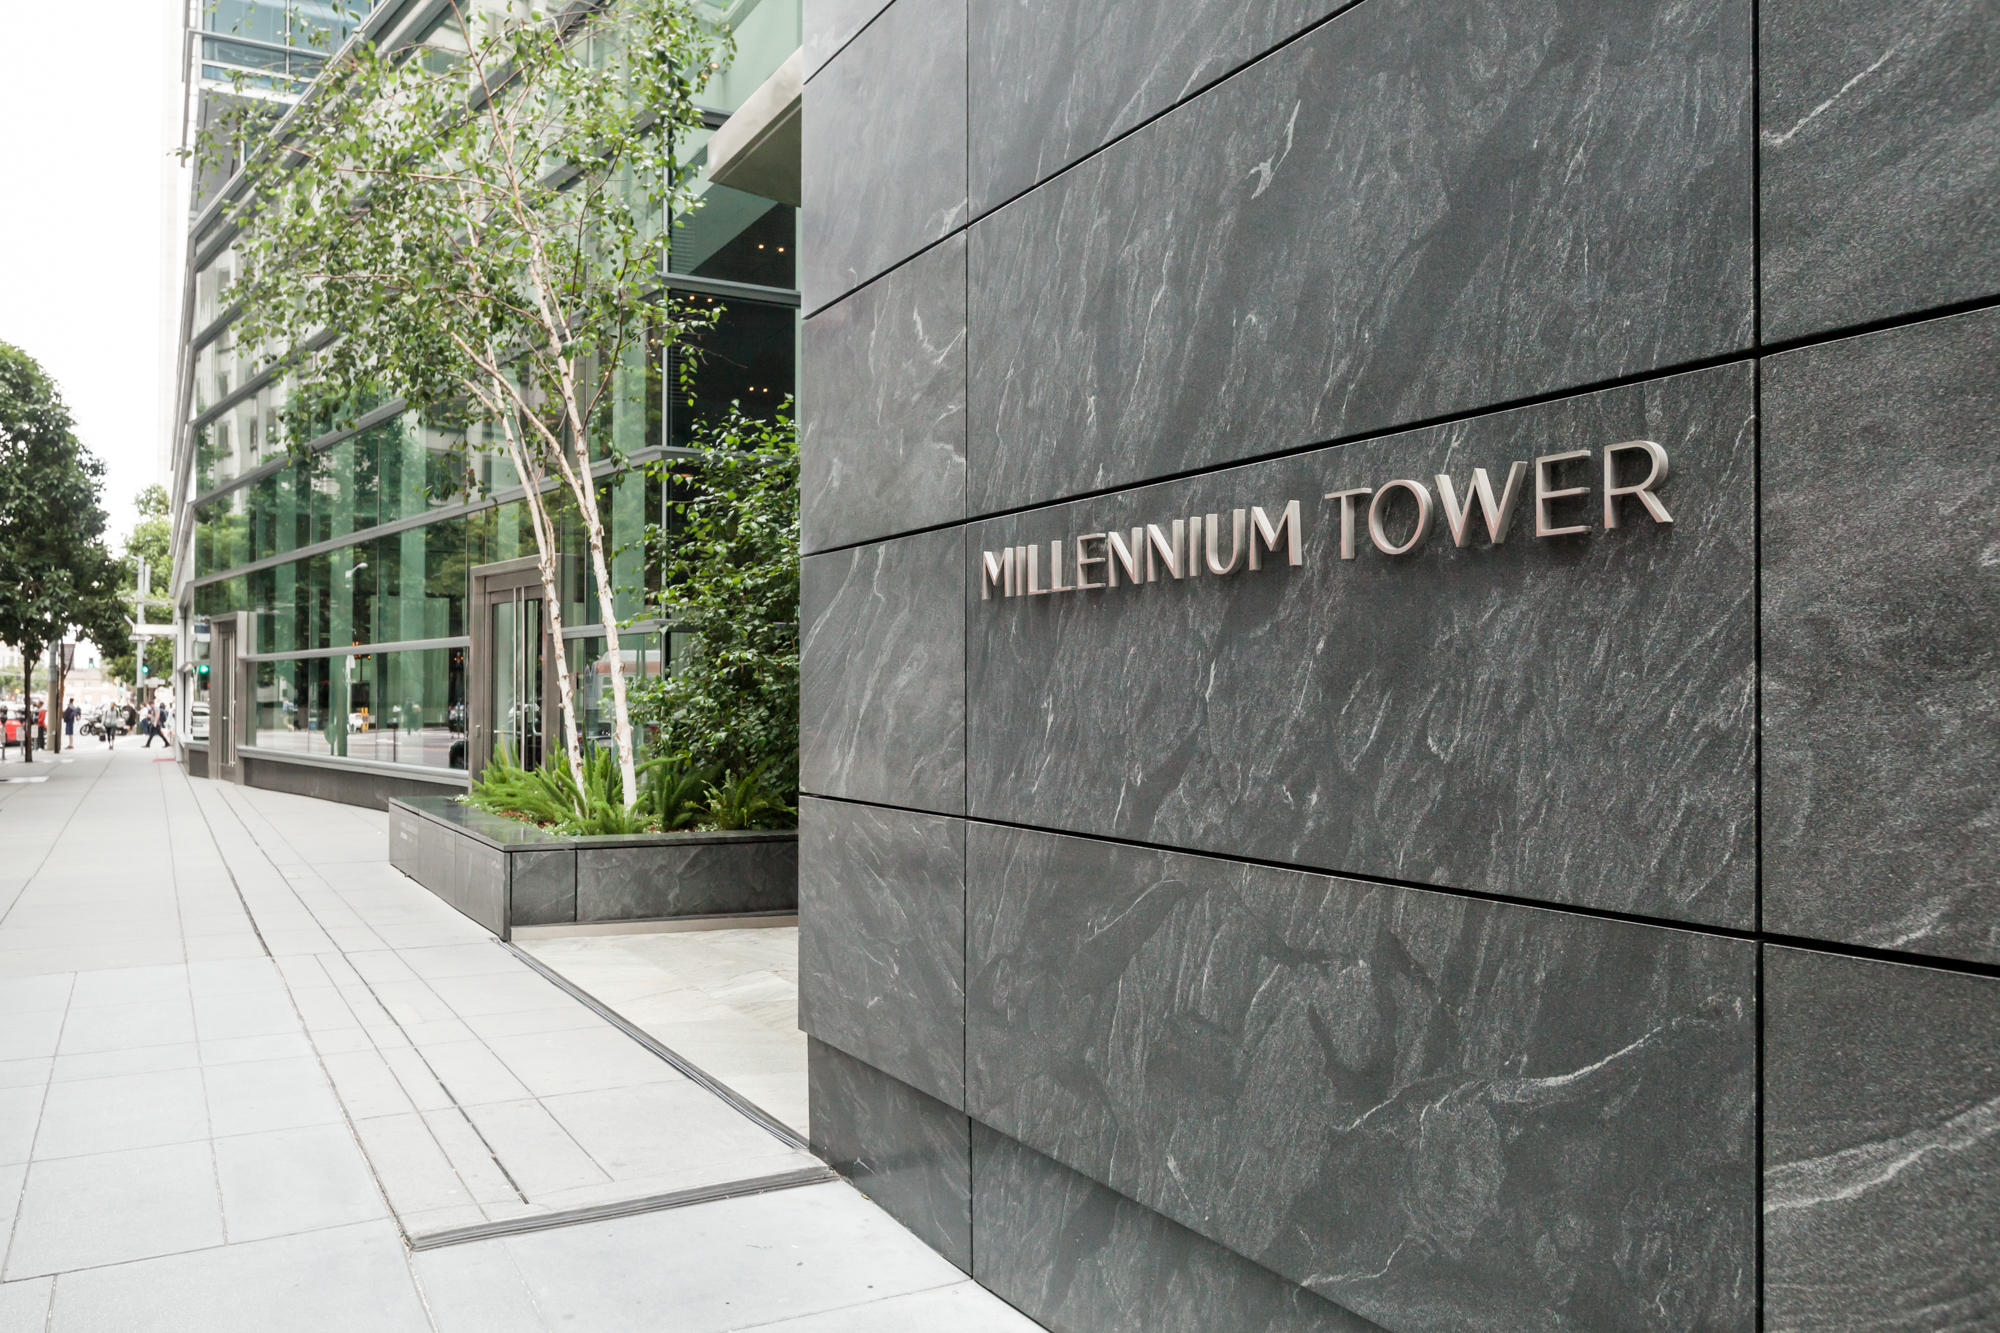 Millennium Tower Is Tilting Sinking More Than Expected